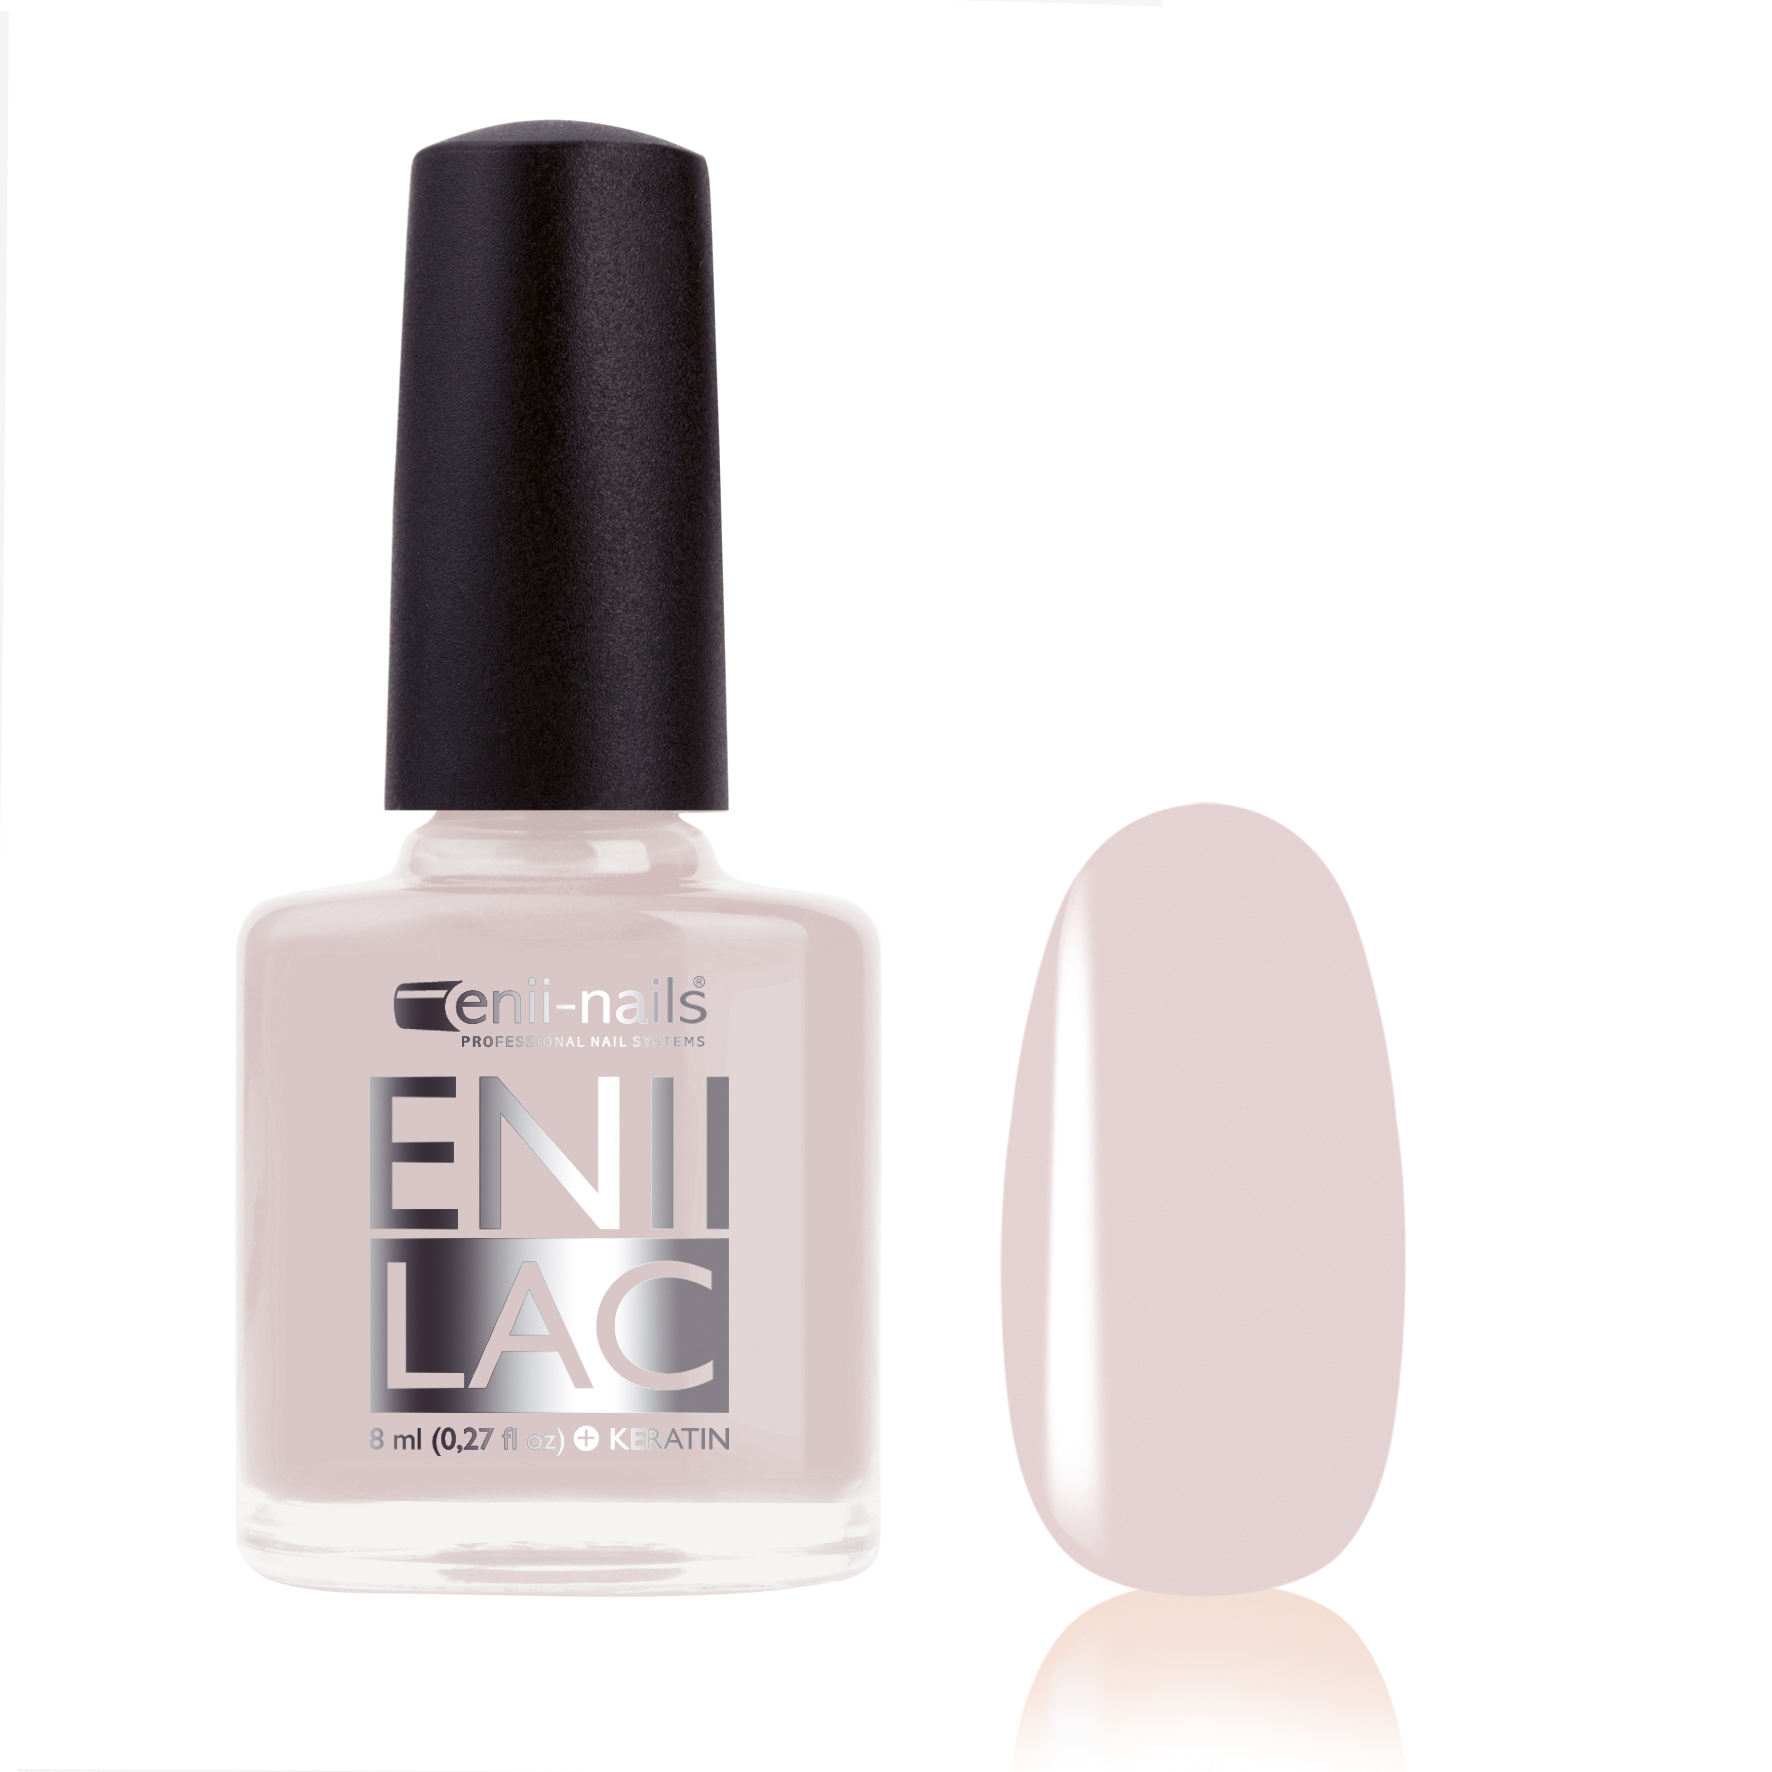 ENII-NAILS ENII LAC 8 ml - Champagne Shower